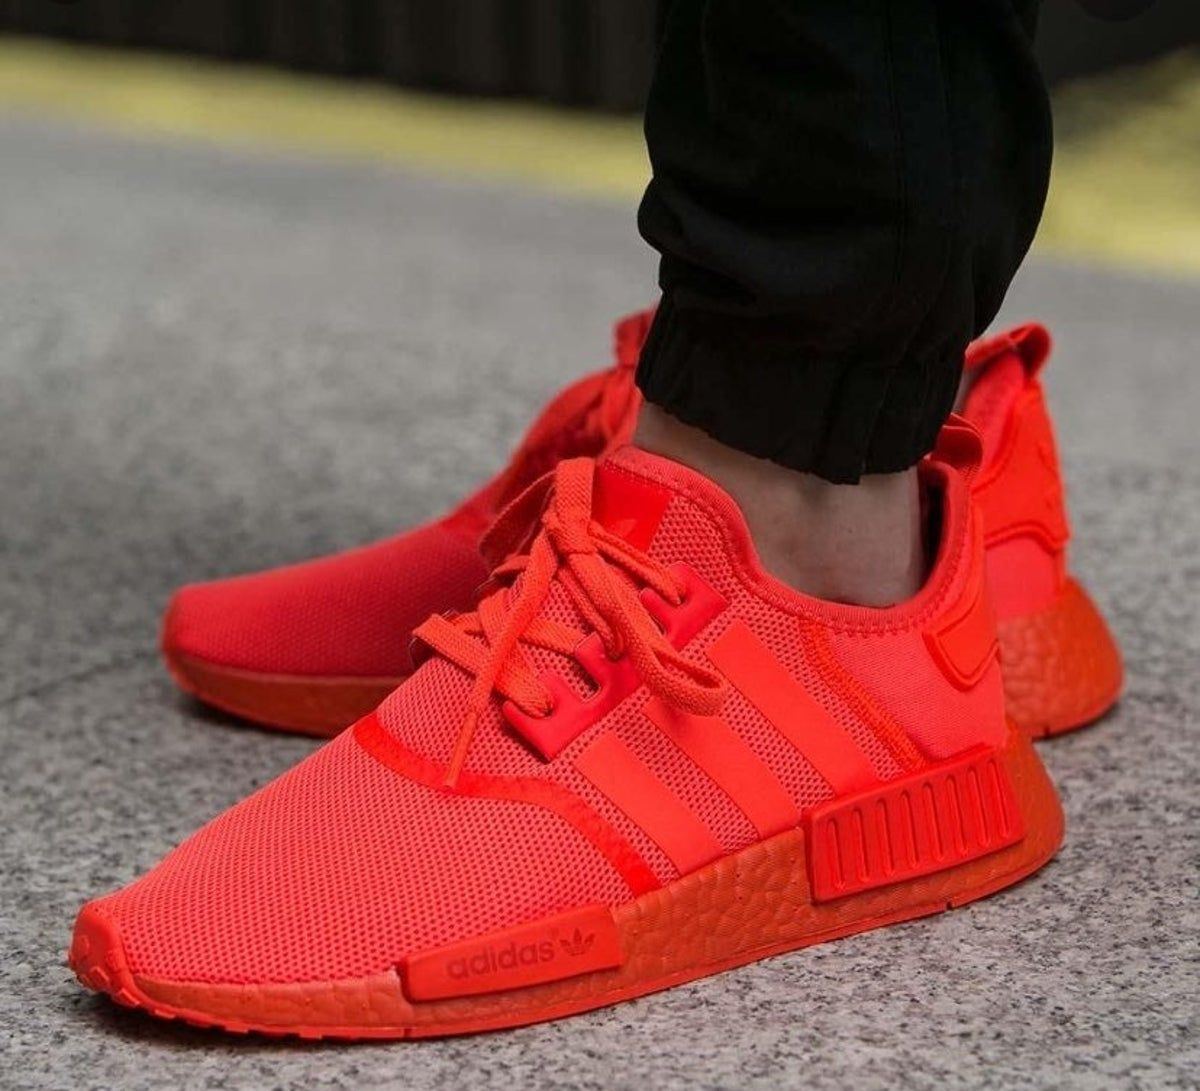 Adidas solar red nmd in 2020 | Red